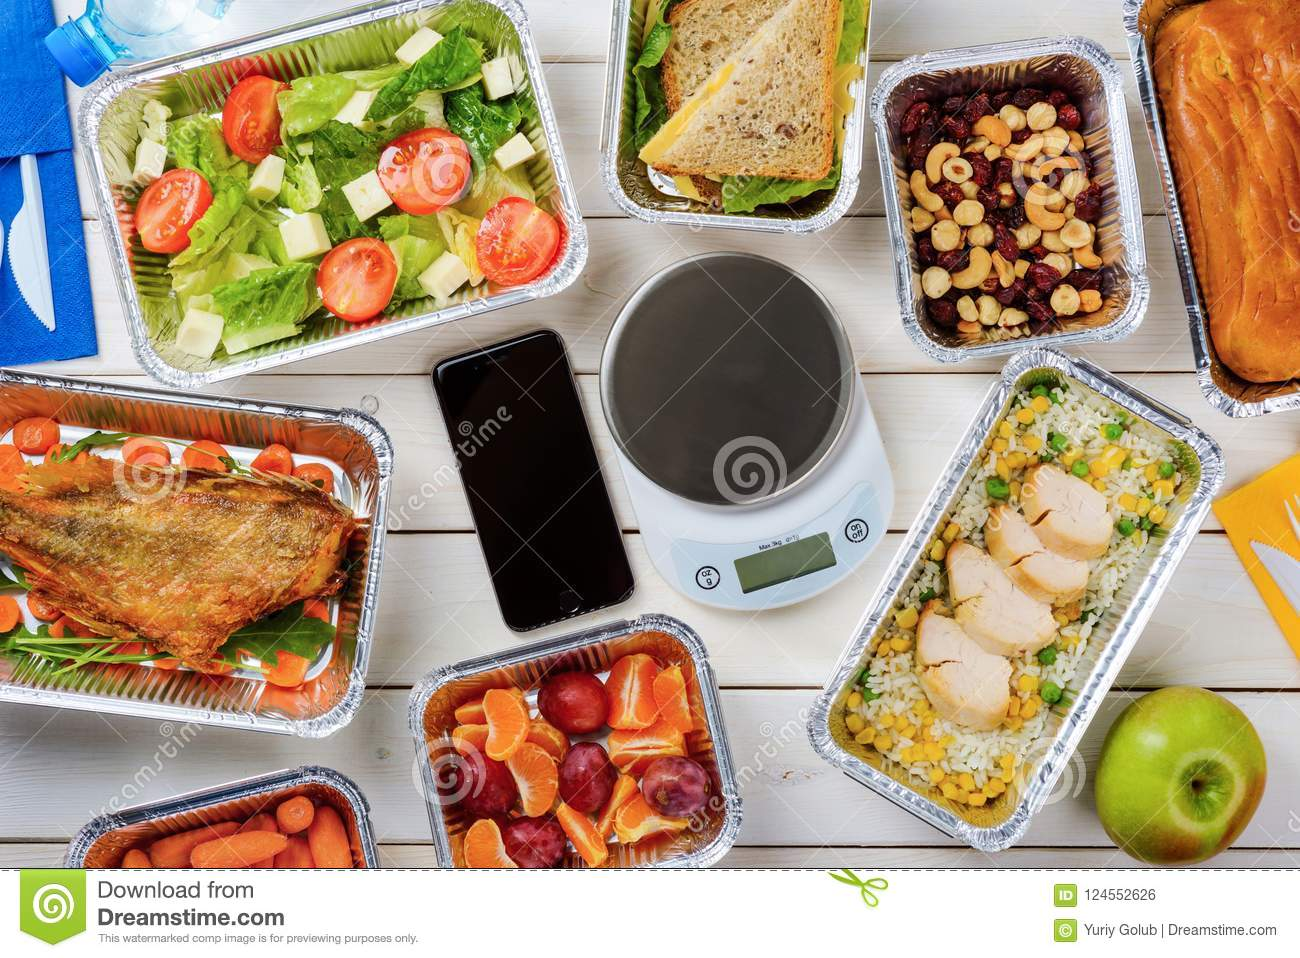 Lean fish and food scale